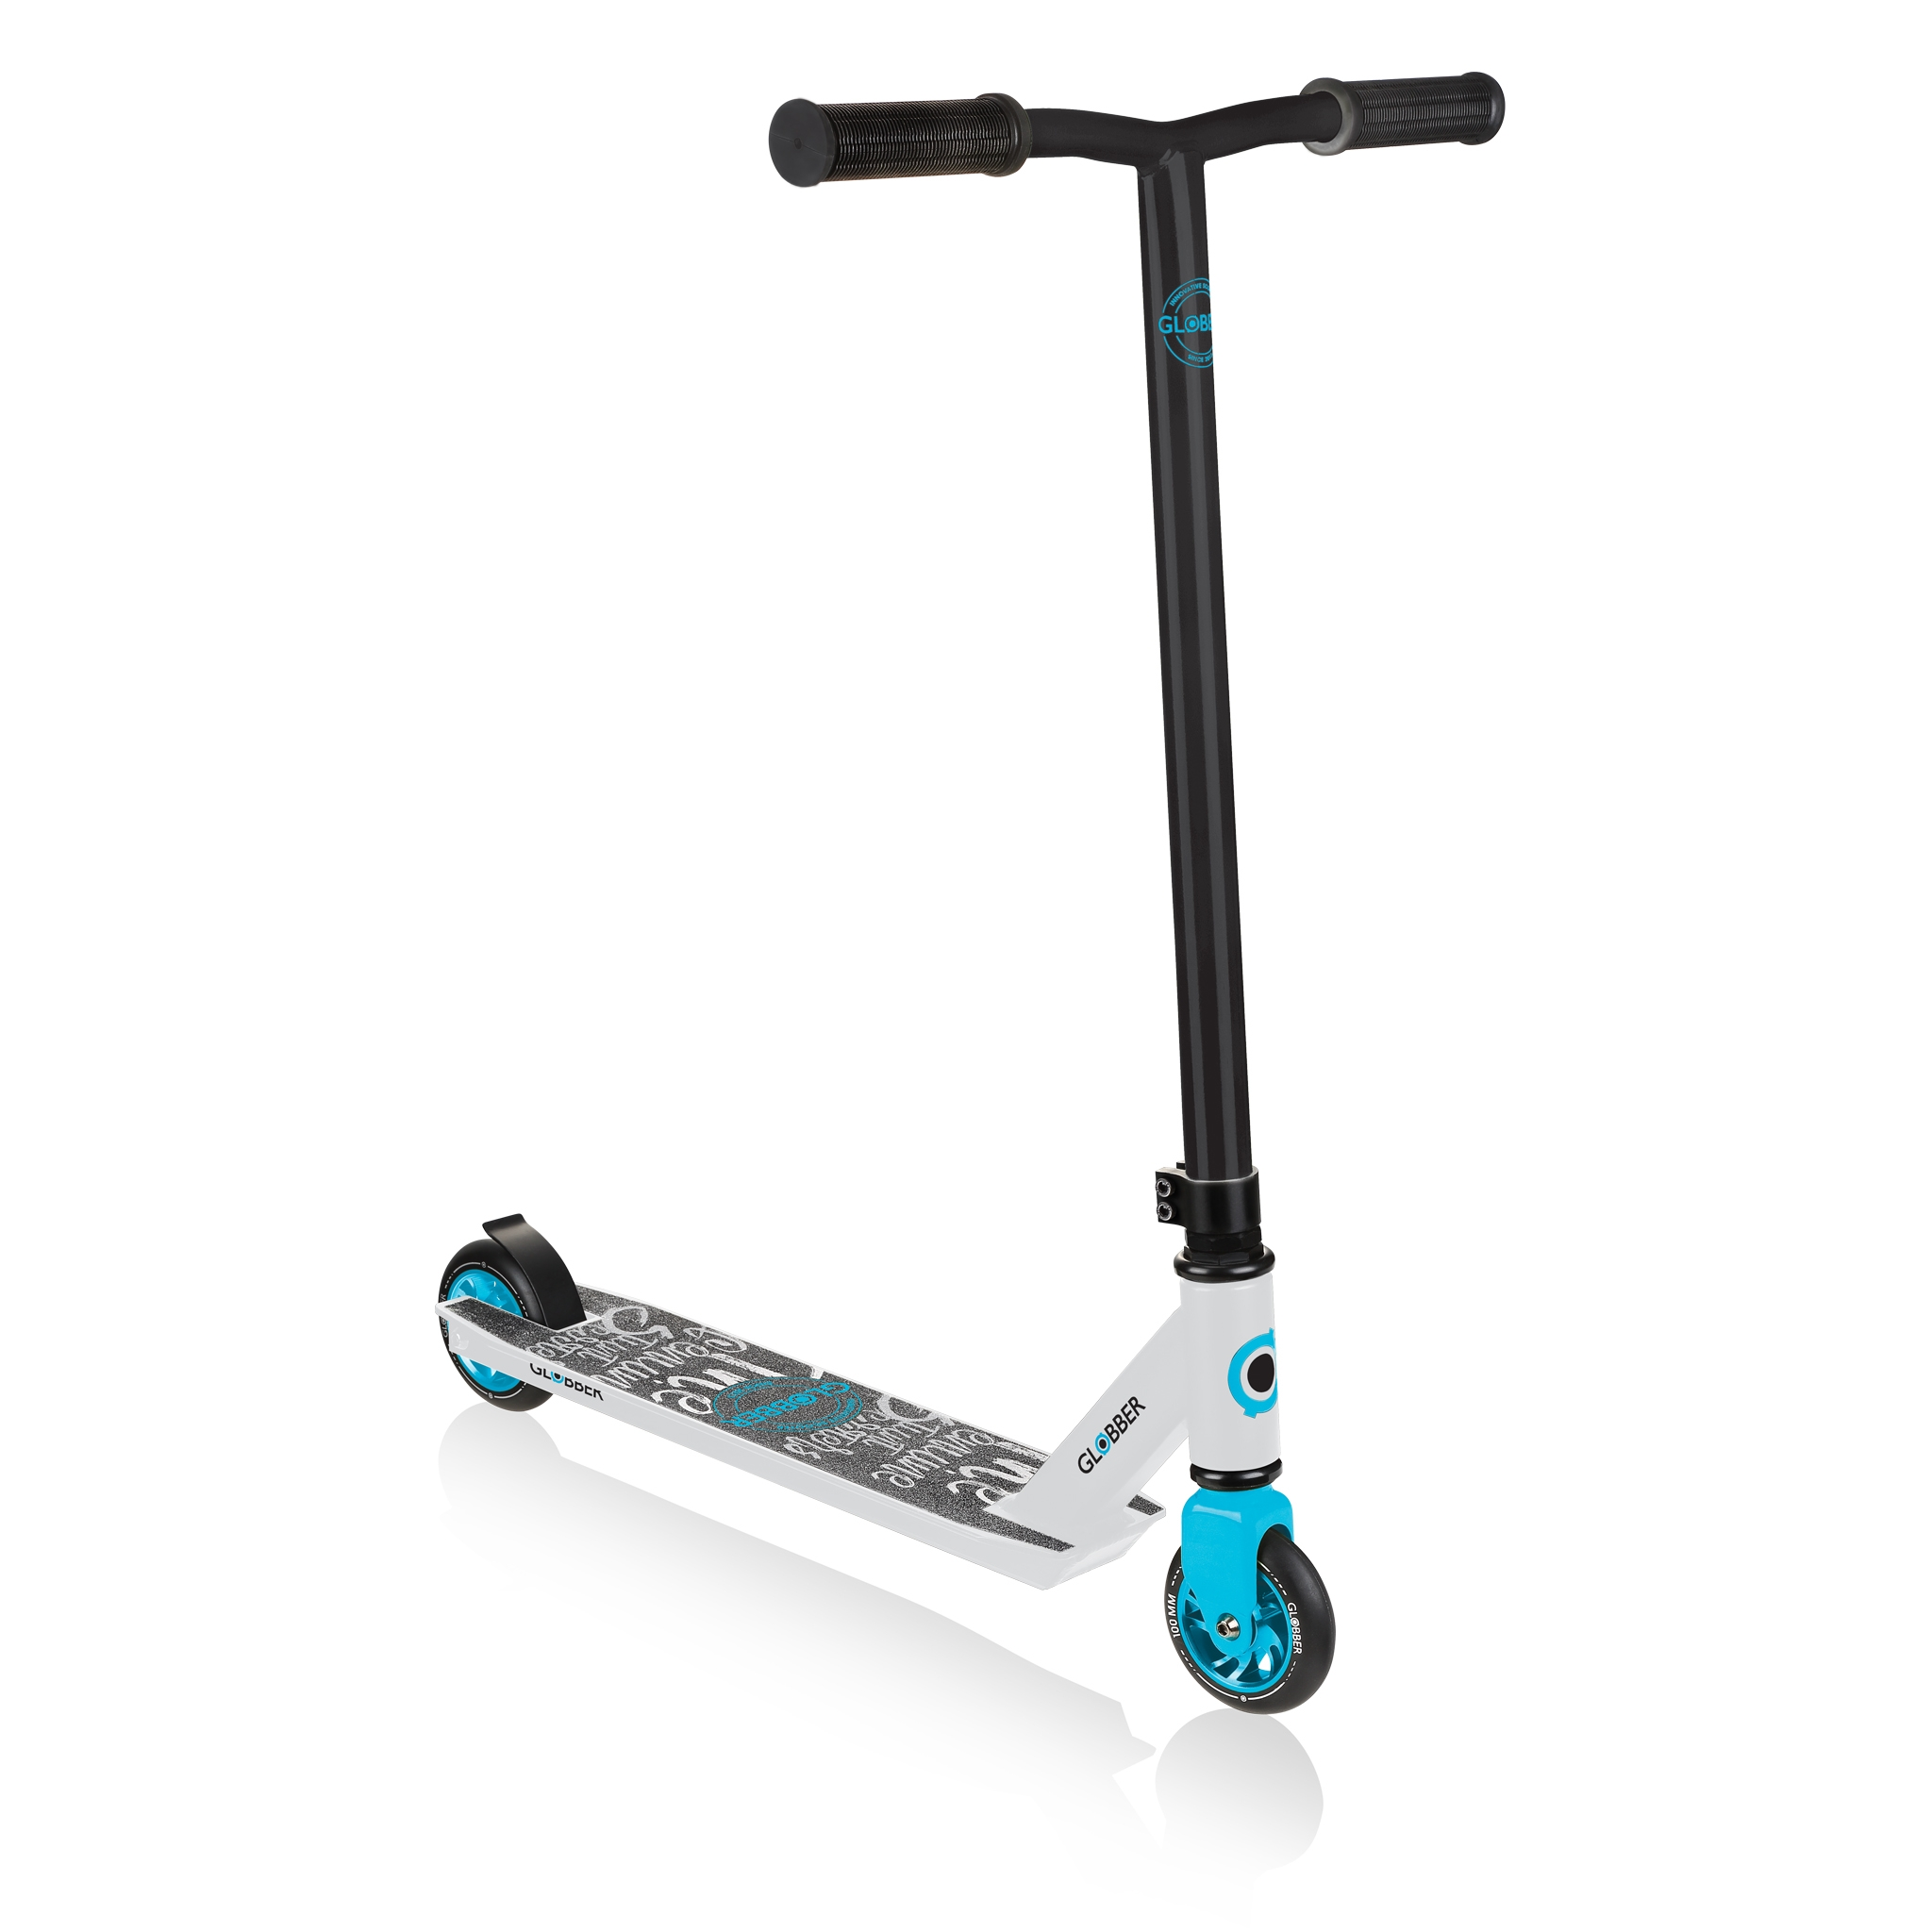 stunt scooter for kids and teens aged 8+ - Globber GS 360 0